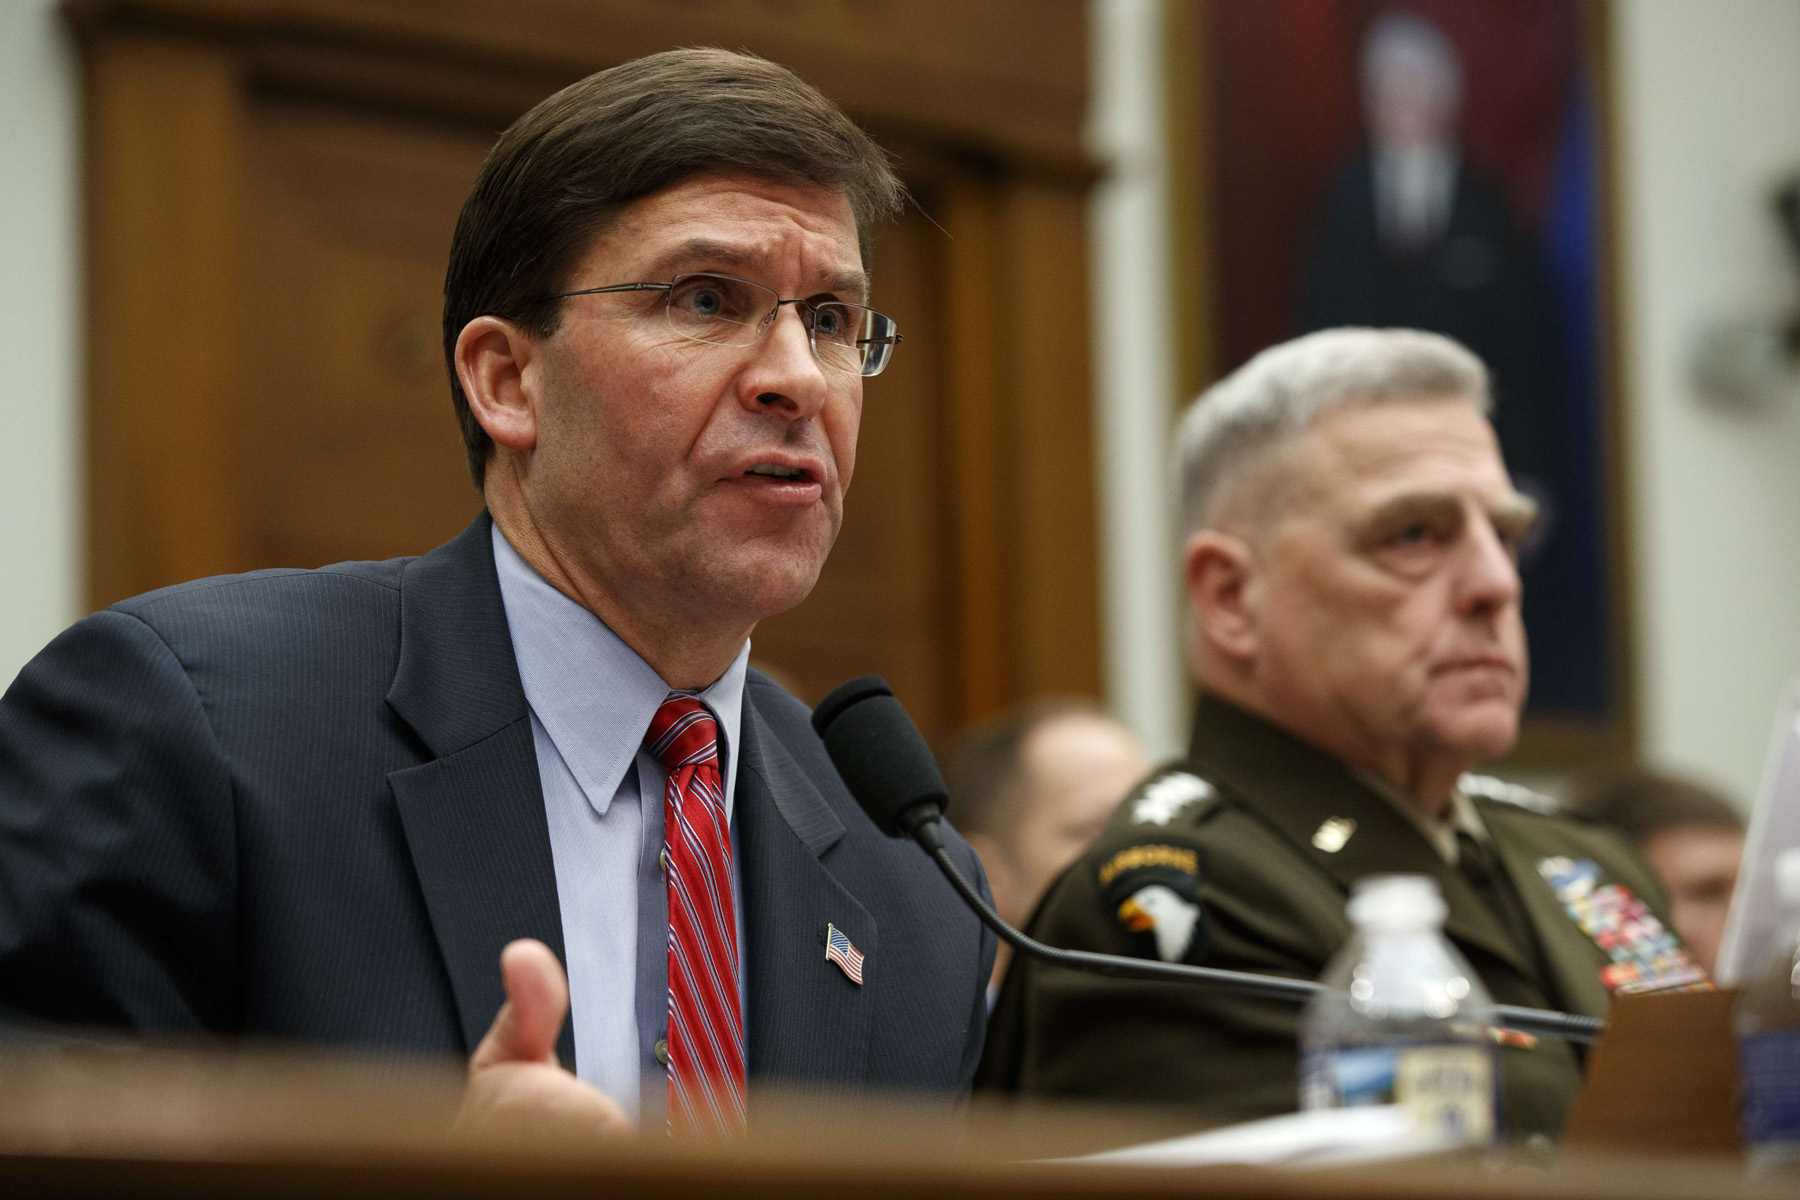 US Secretary of Defence Mark Esper (L) and Chairman of the Joint Chiefs General Mark Milley testify to a US House committee hearing on US policy in Syria, December 11, on Capitol Hill in Washington. (AP)